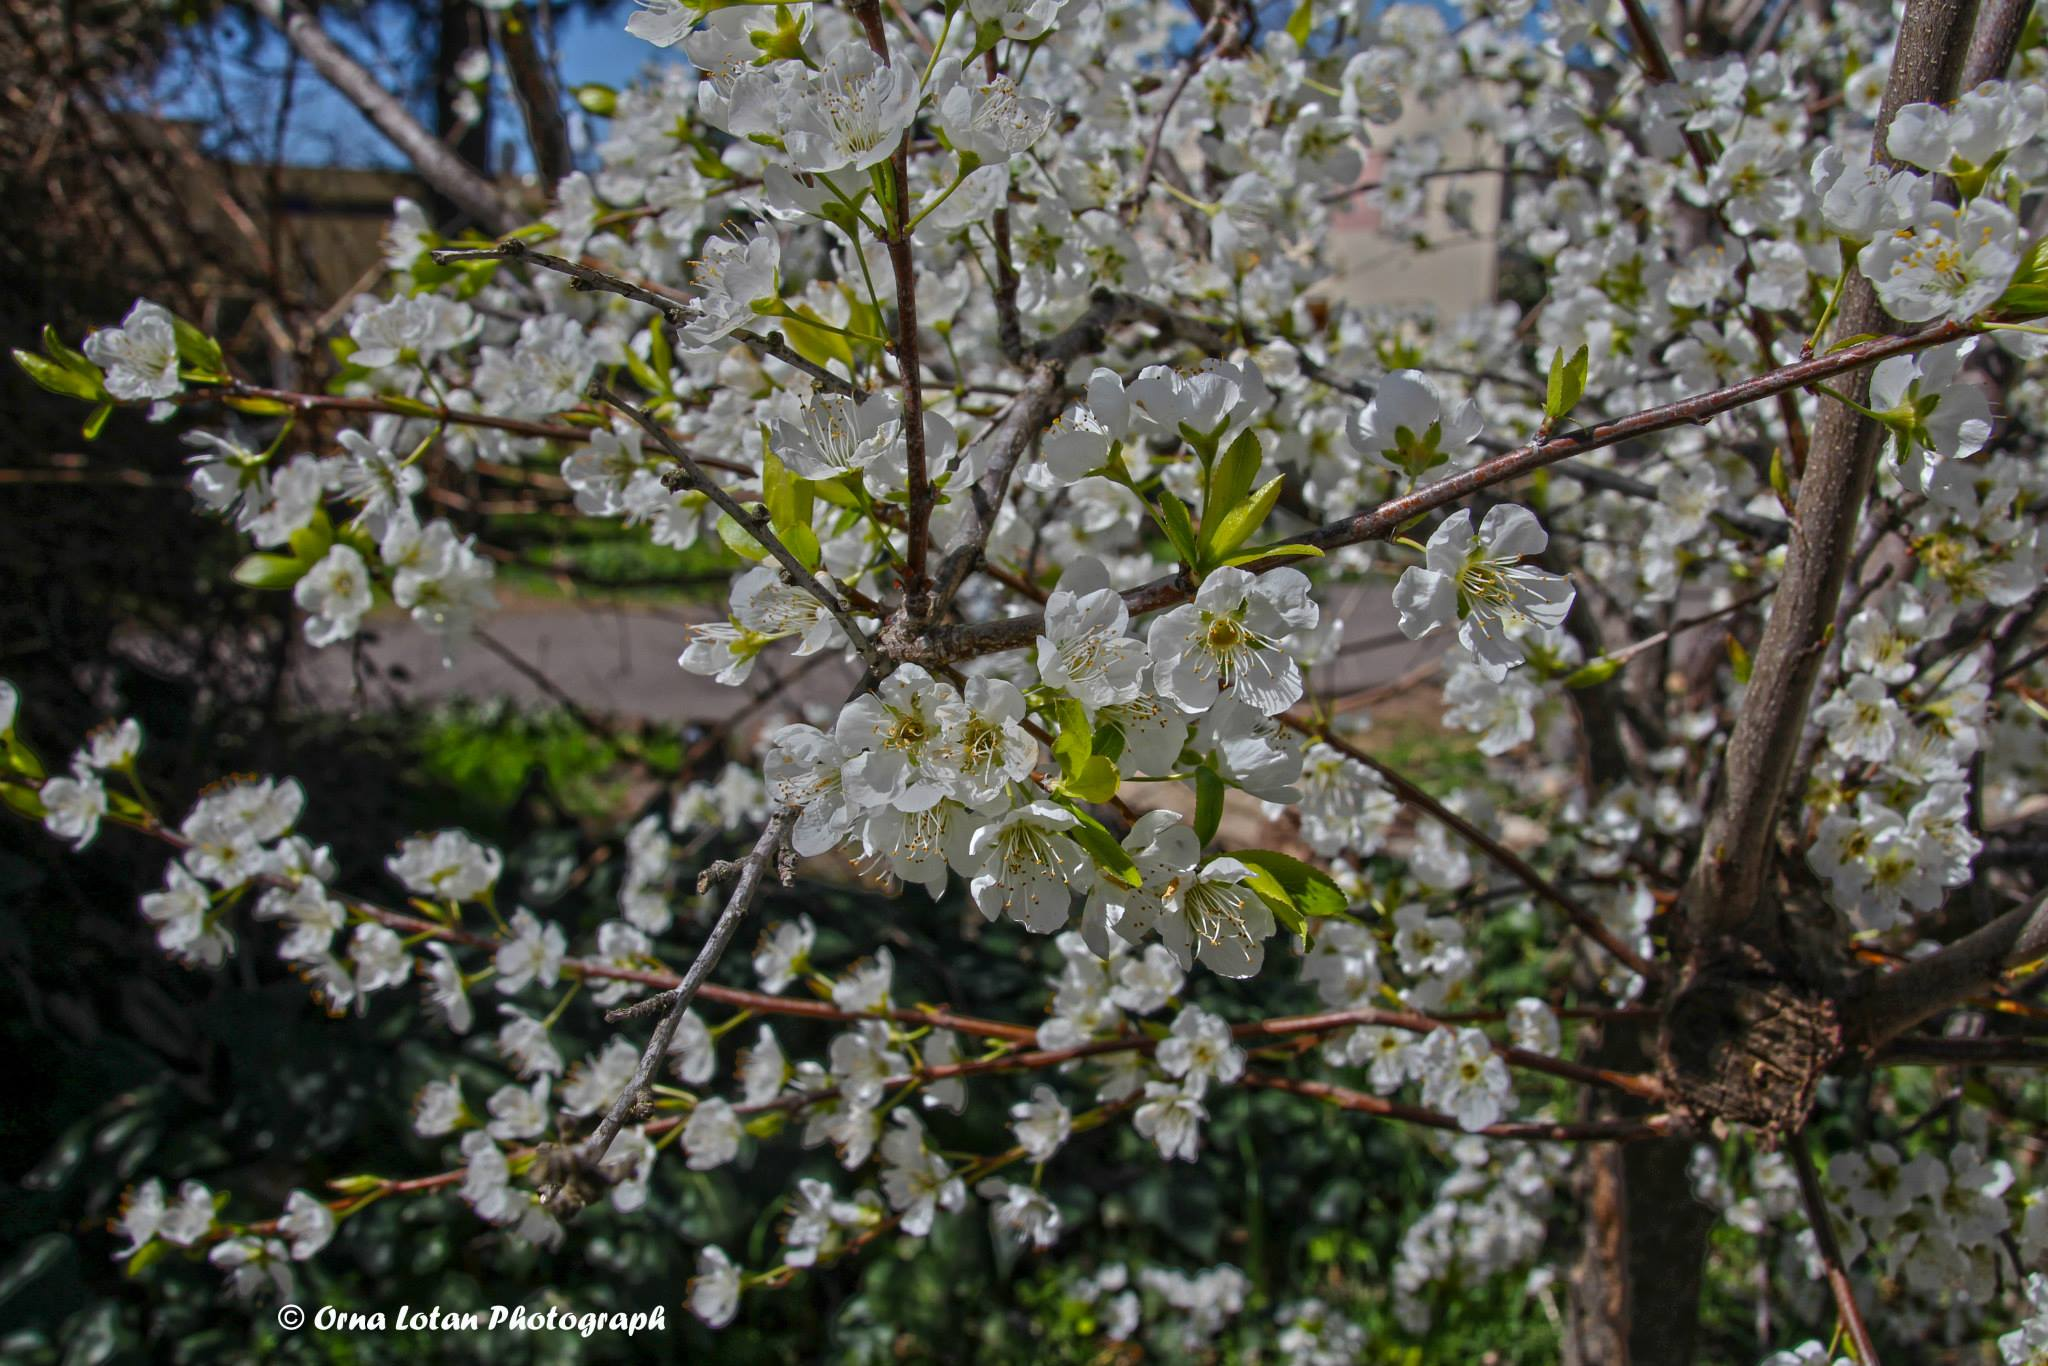 almond tree with beautiful flowers begins to blossom early in the winter in Israel